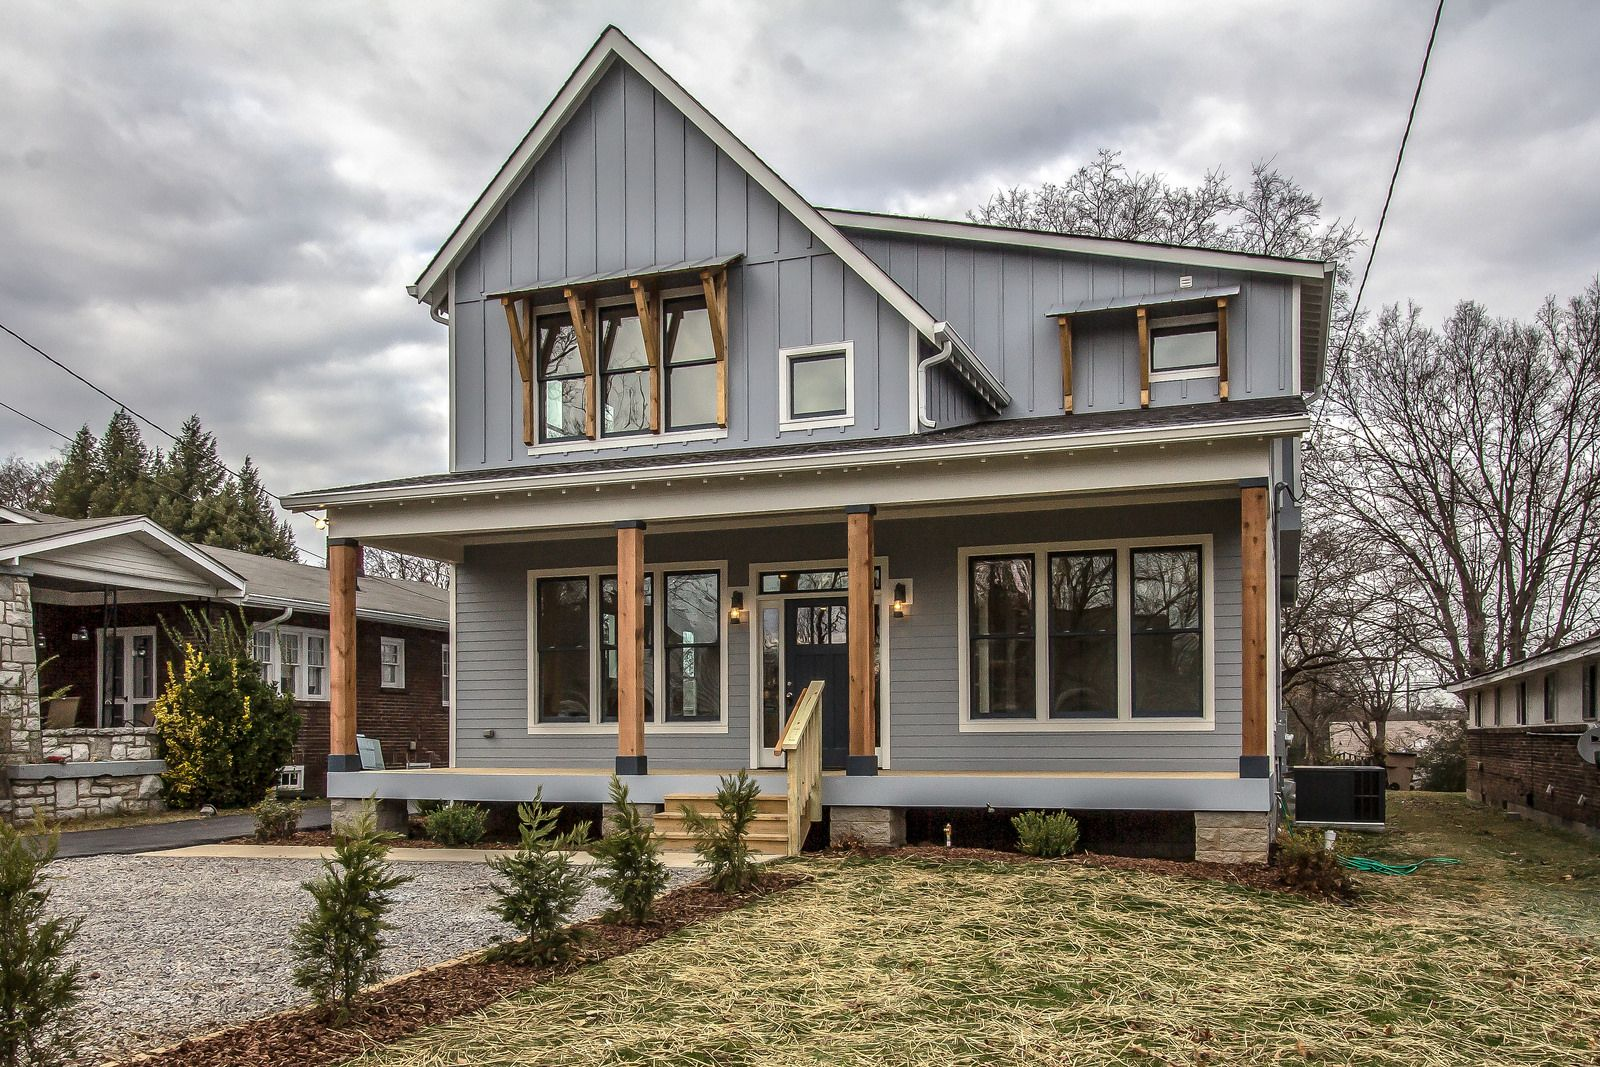 Farmhouse Color Palette Exterior Urban Farmhouse Exterior Urban Farmhouse Urban And Houzz